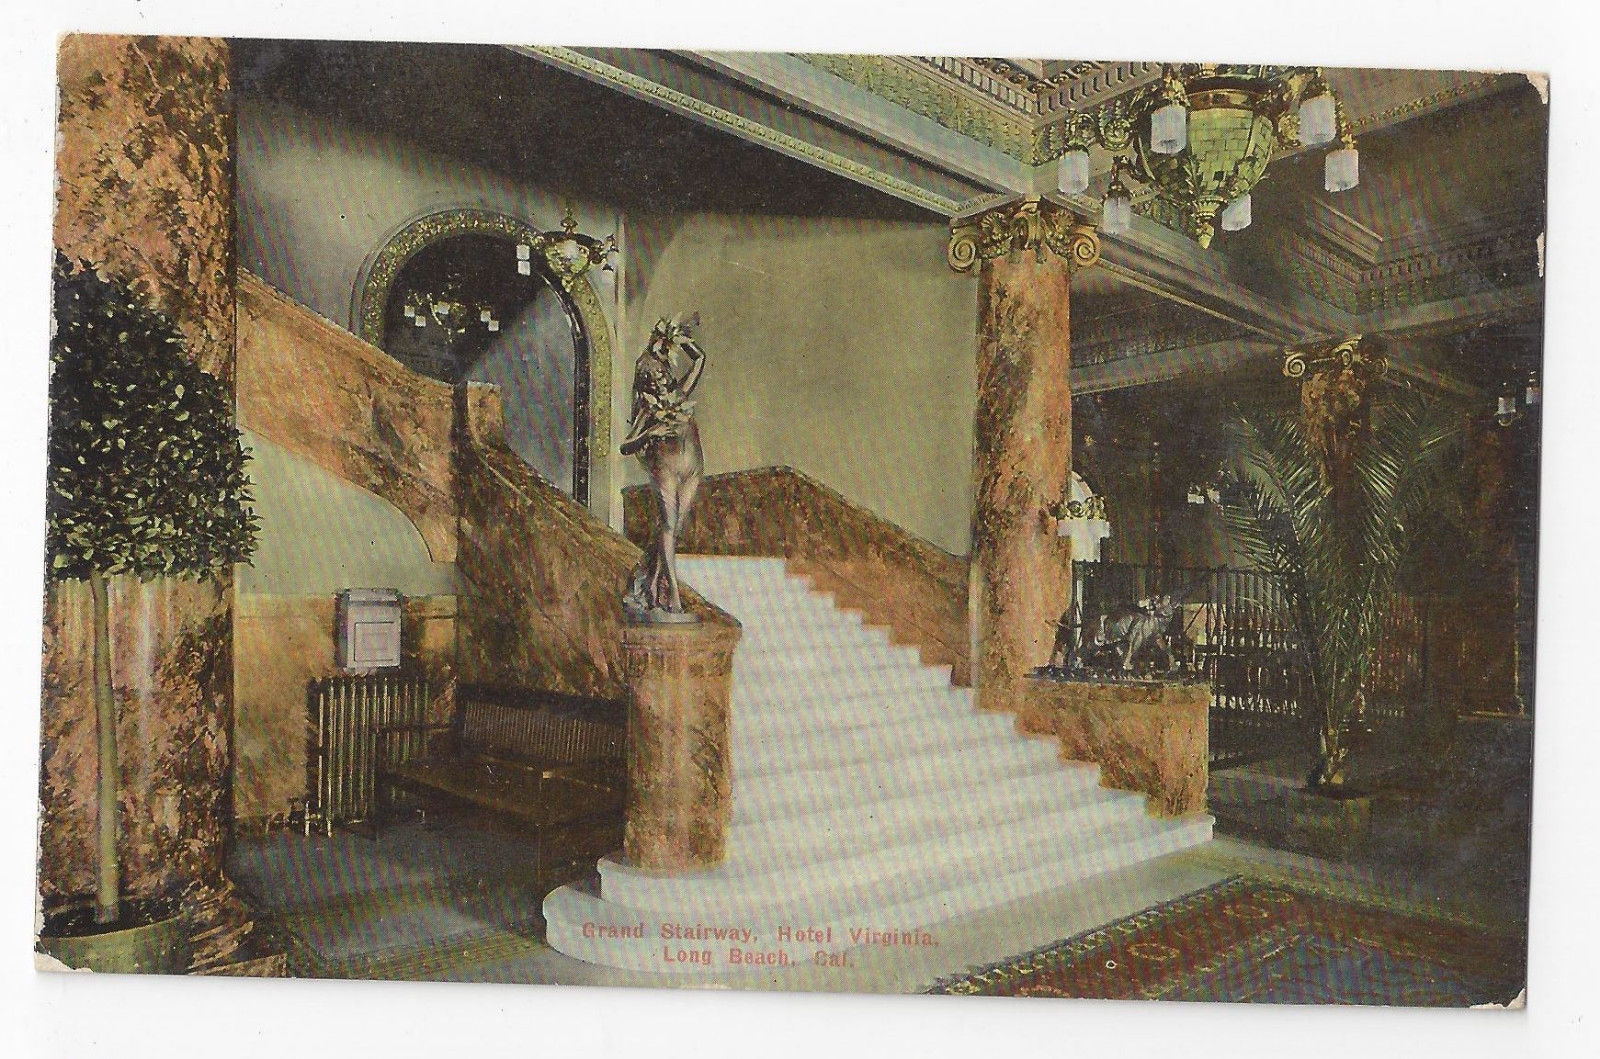 CA Long Beach Hotel Virginia Stairway Grand Marble Staircase Vintage Postcard